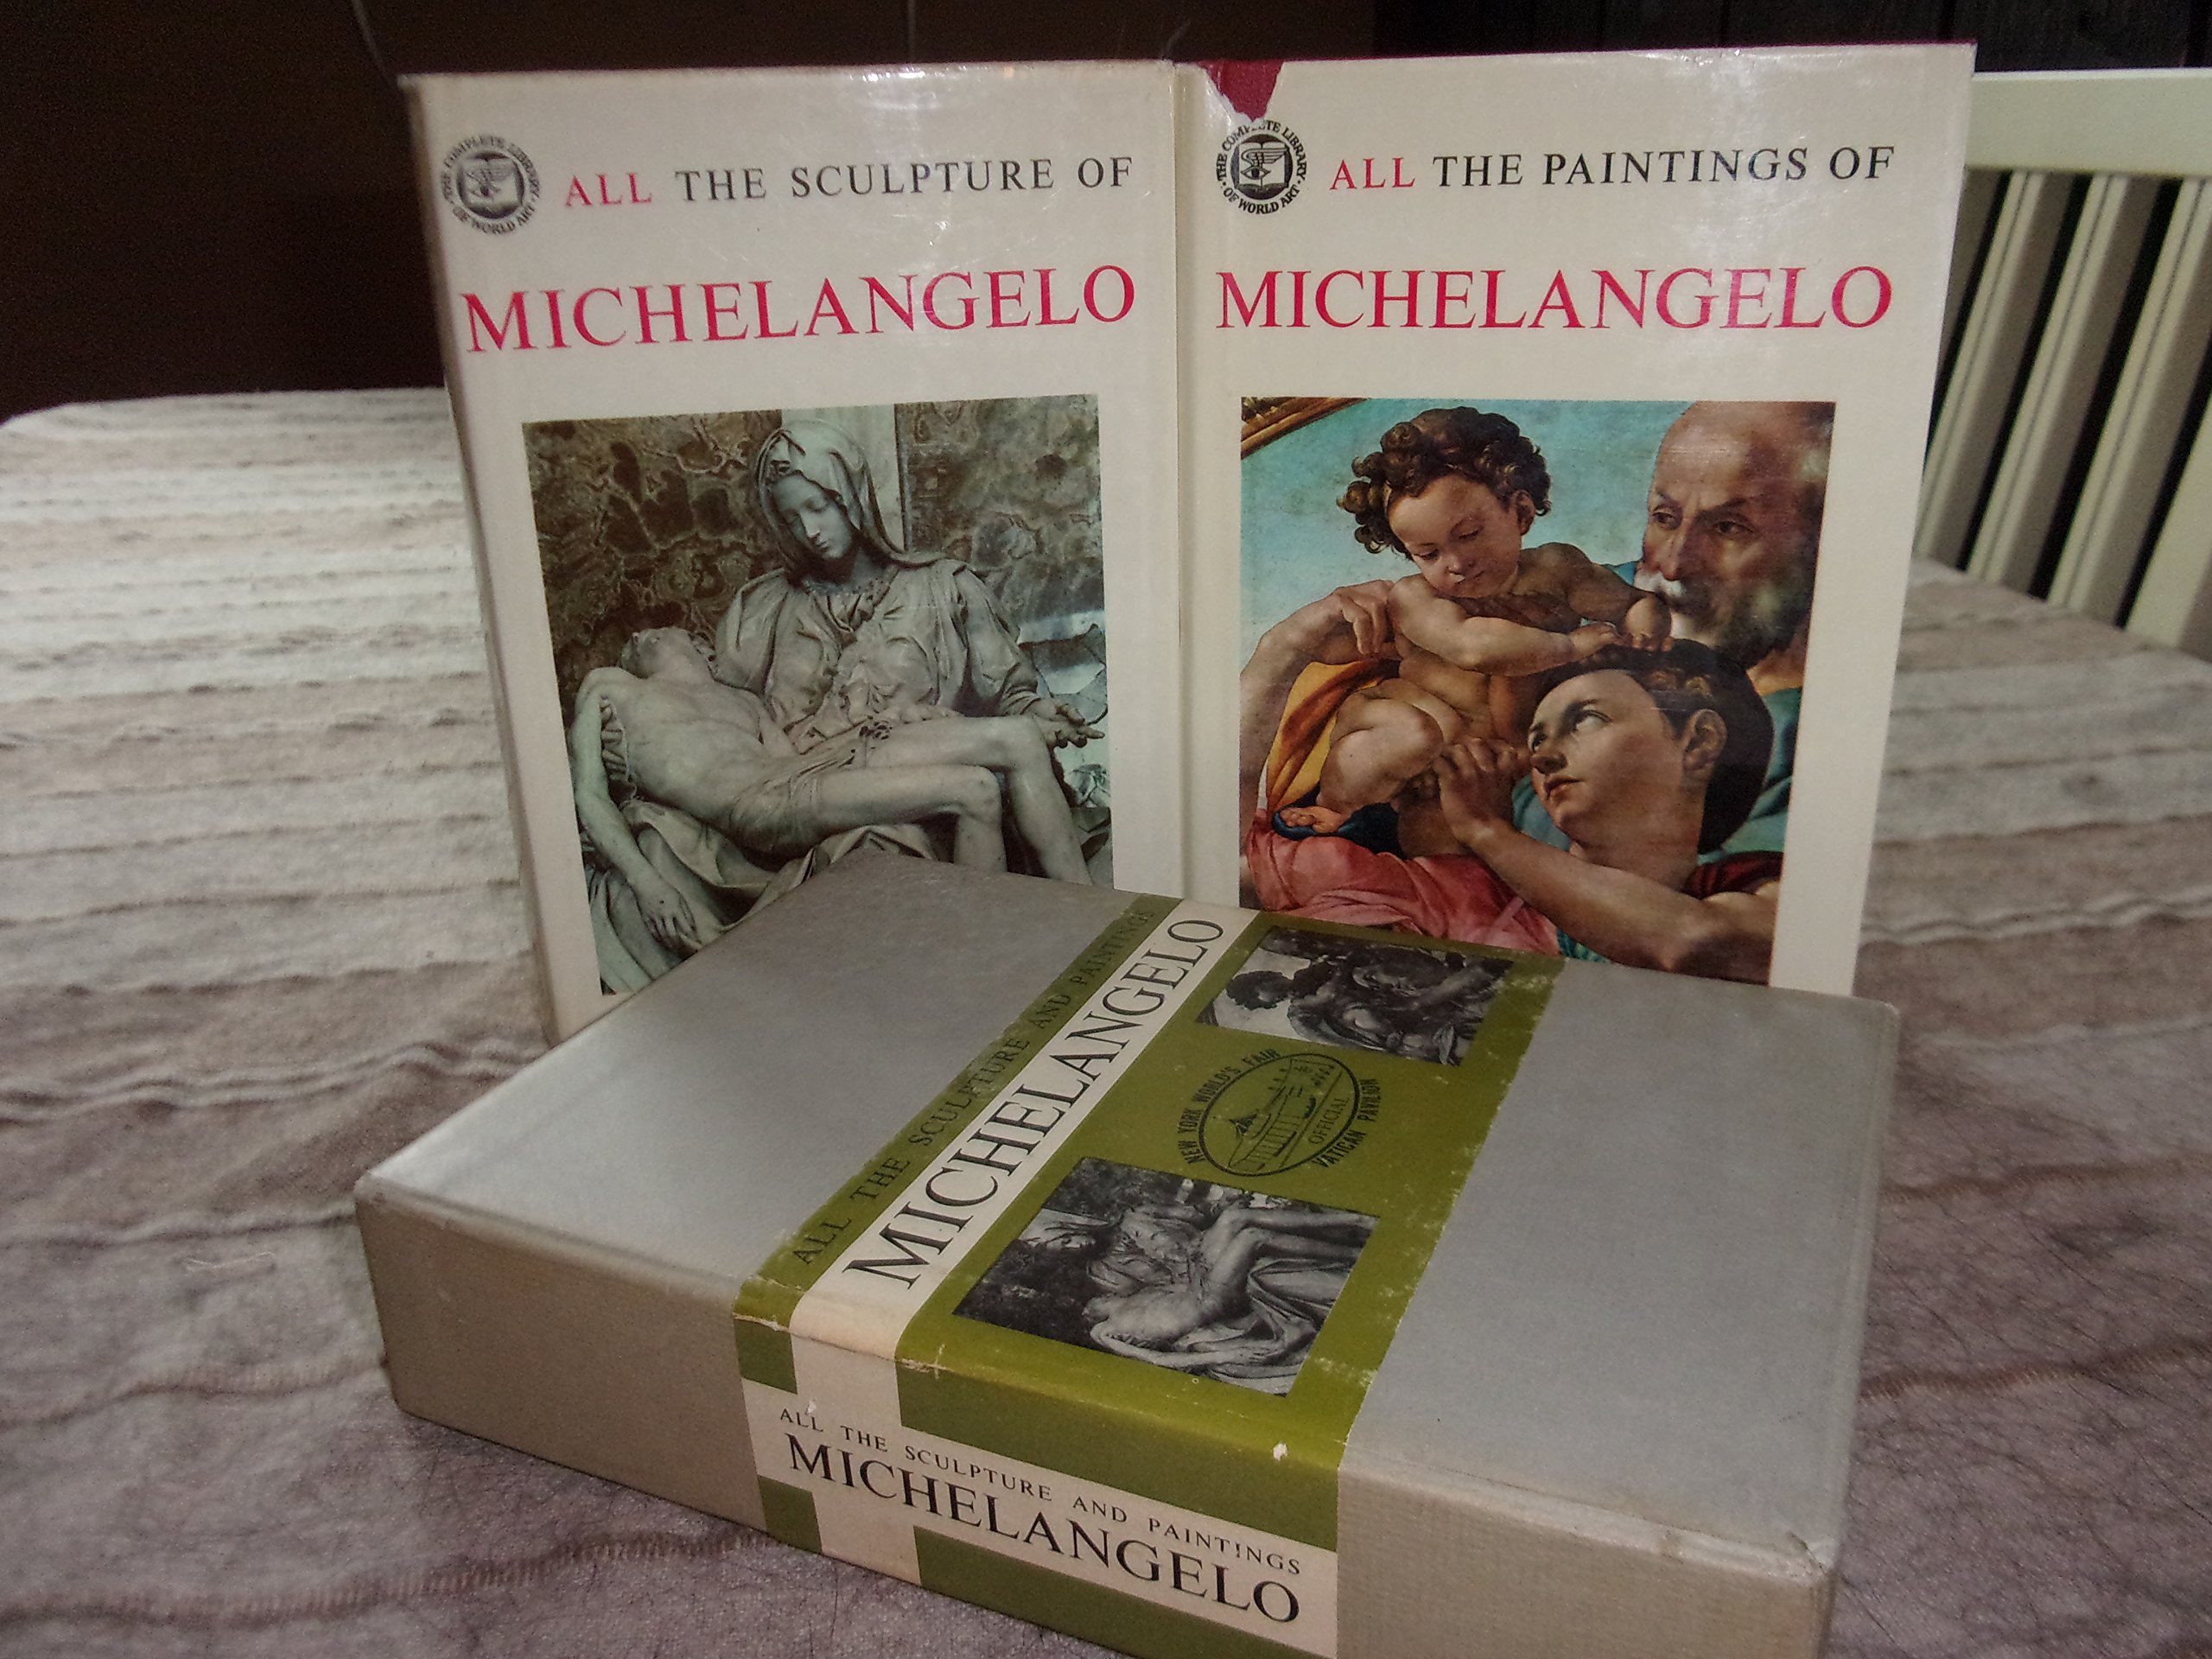 all the sculptures and paitings of michelangelo in two volumes